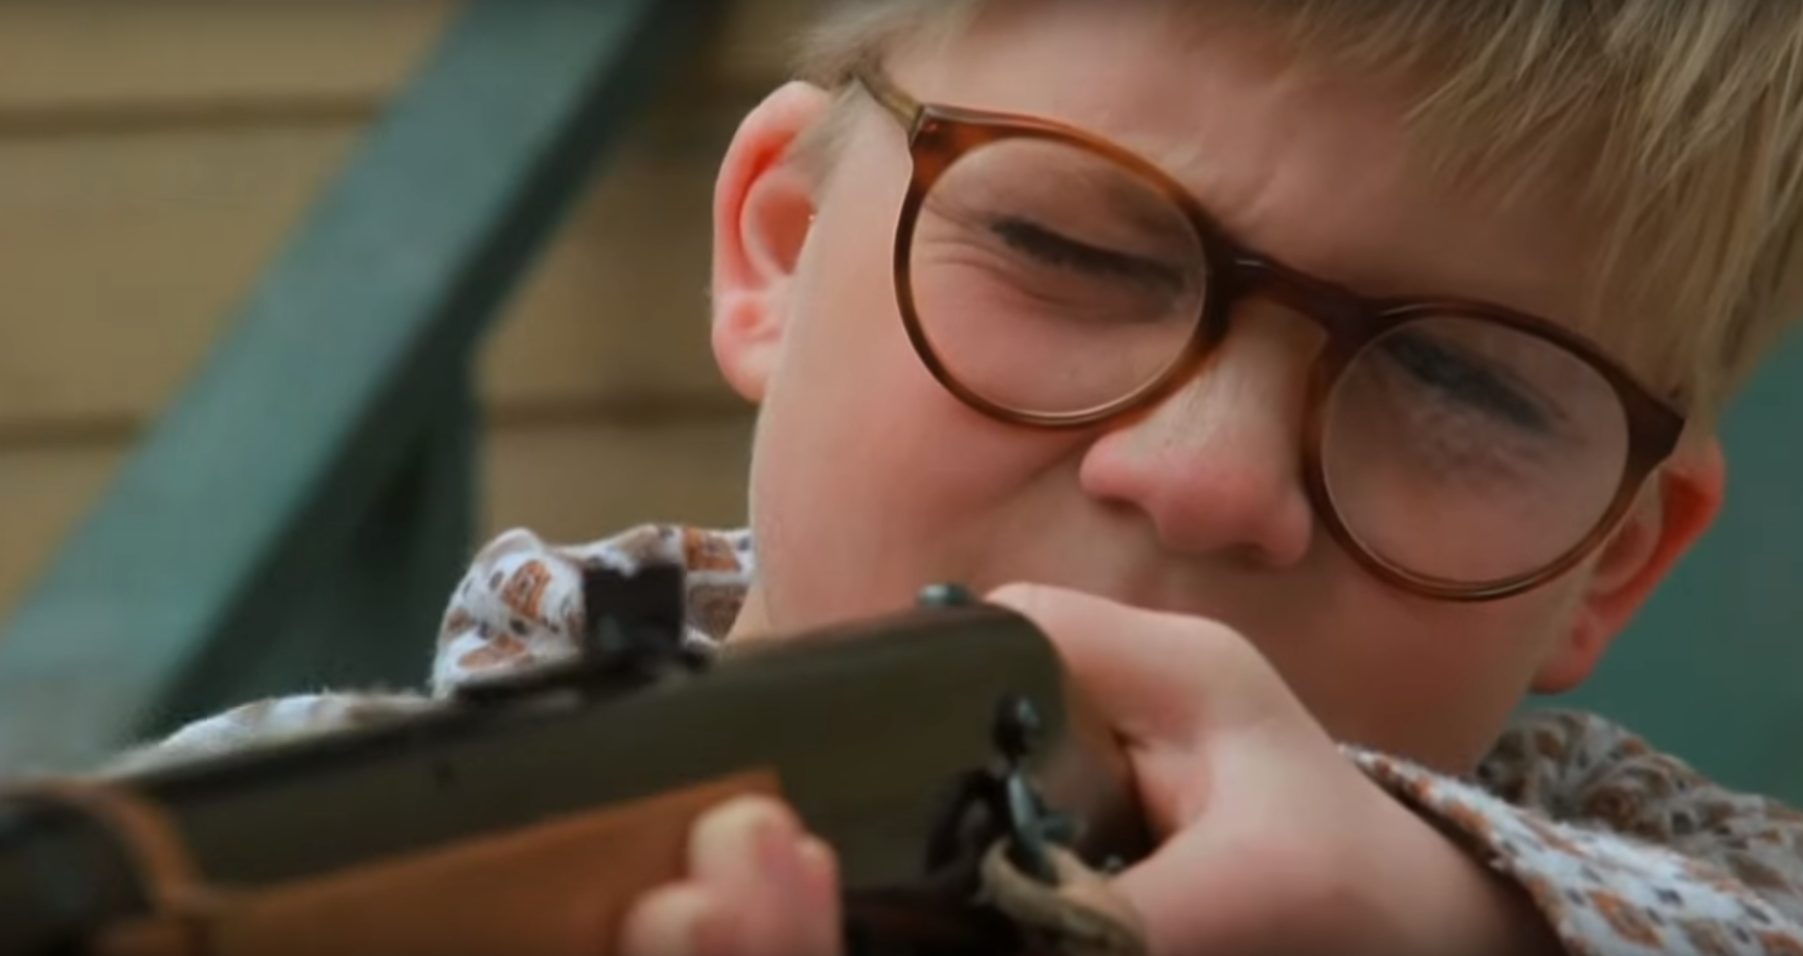 ralphies beloved red ryder bb gun got its start in michigan